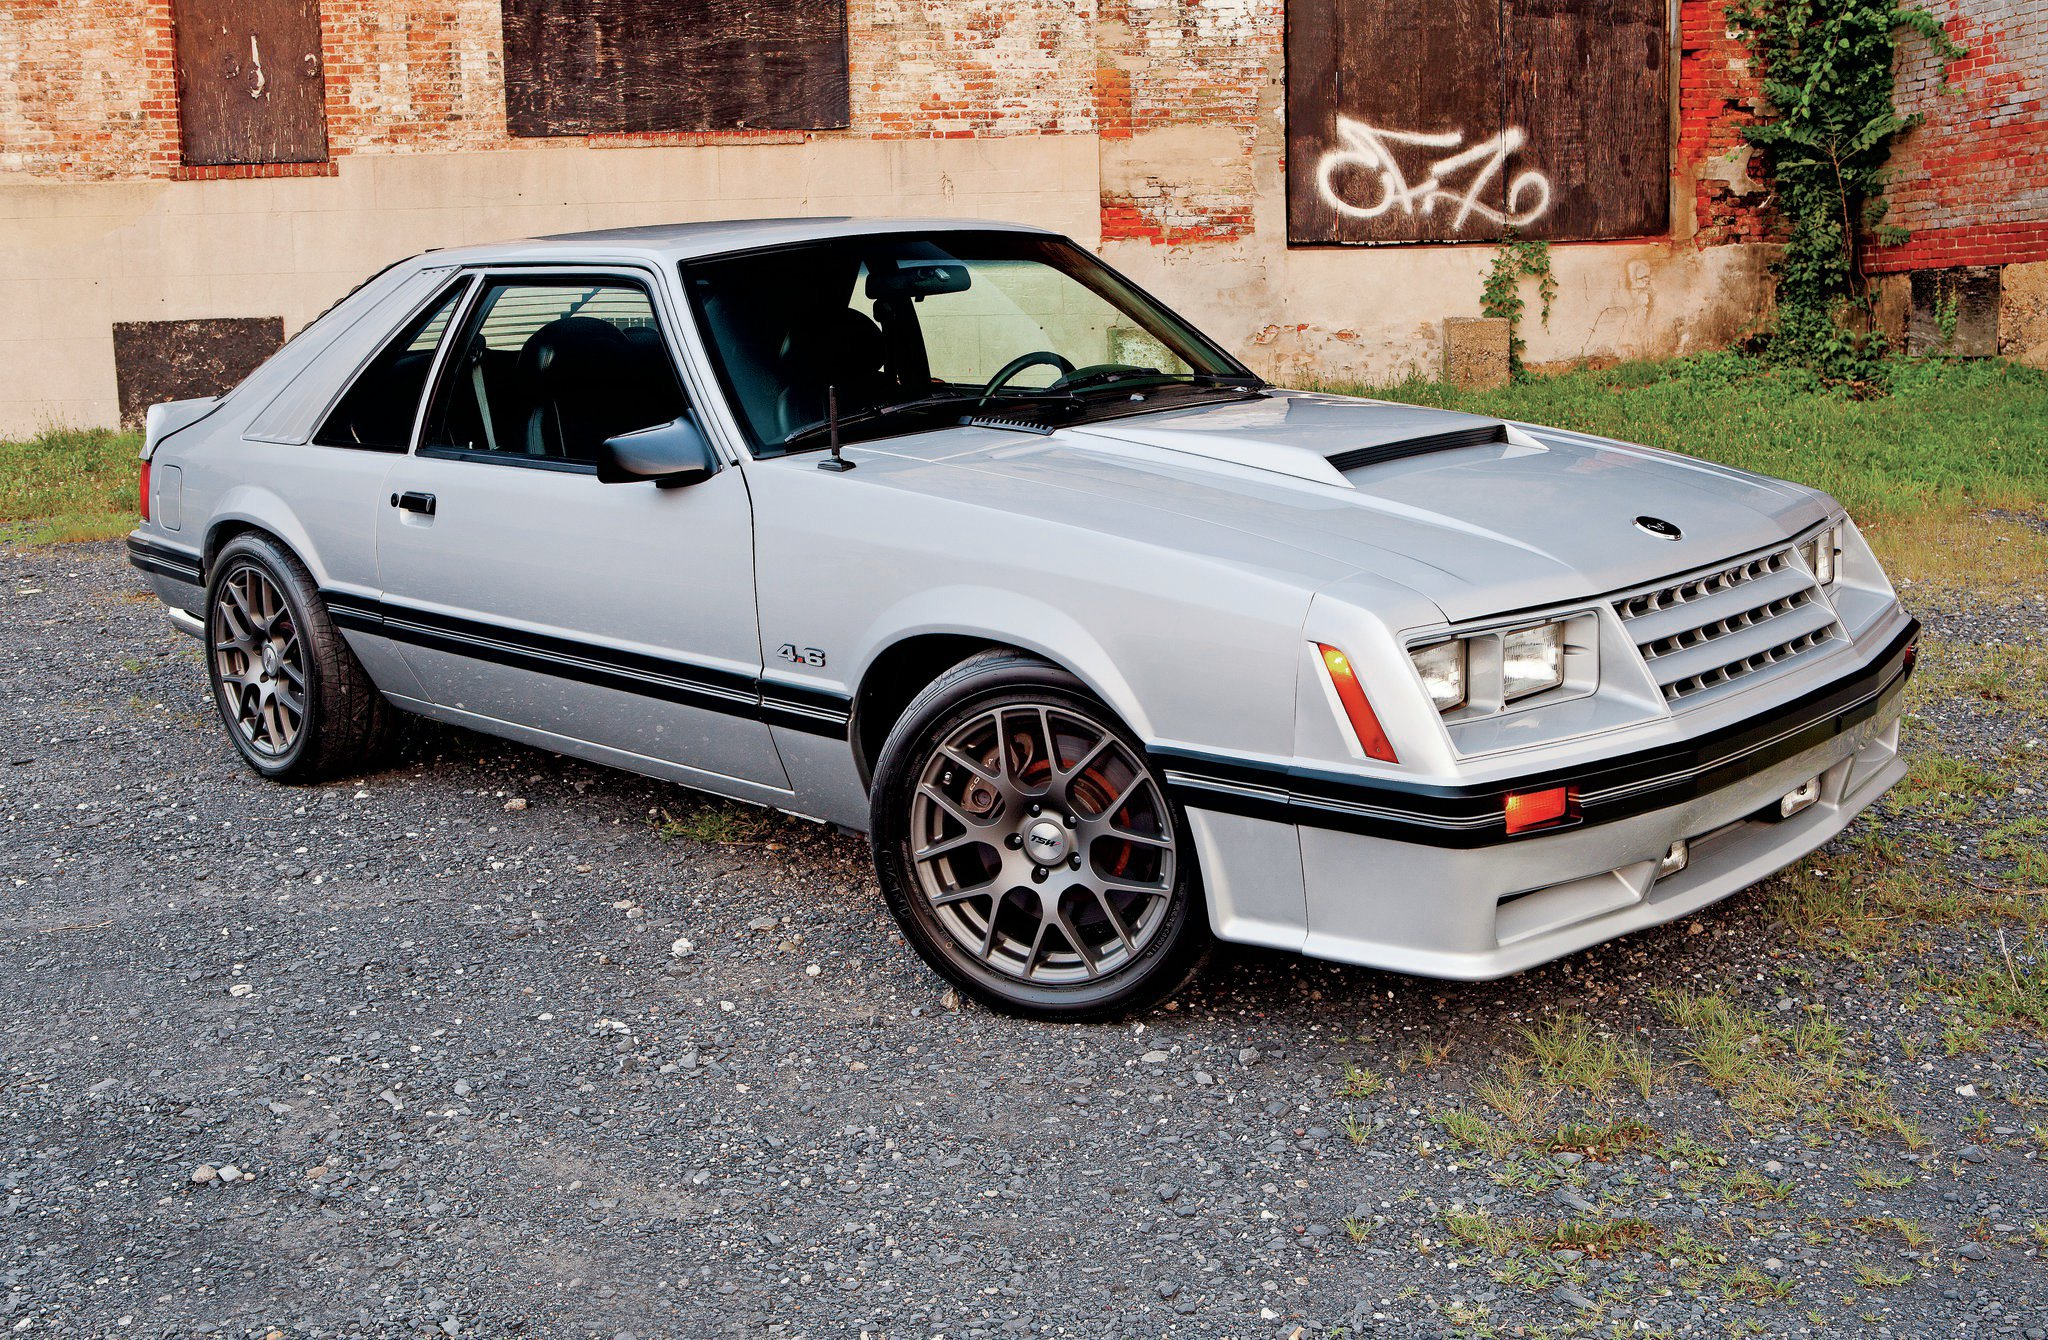 1982 ford mustang gt mach cobra mash up photo image gallery